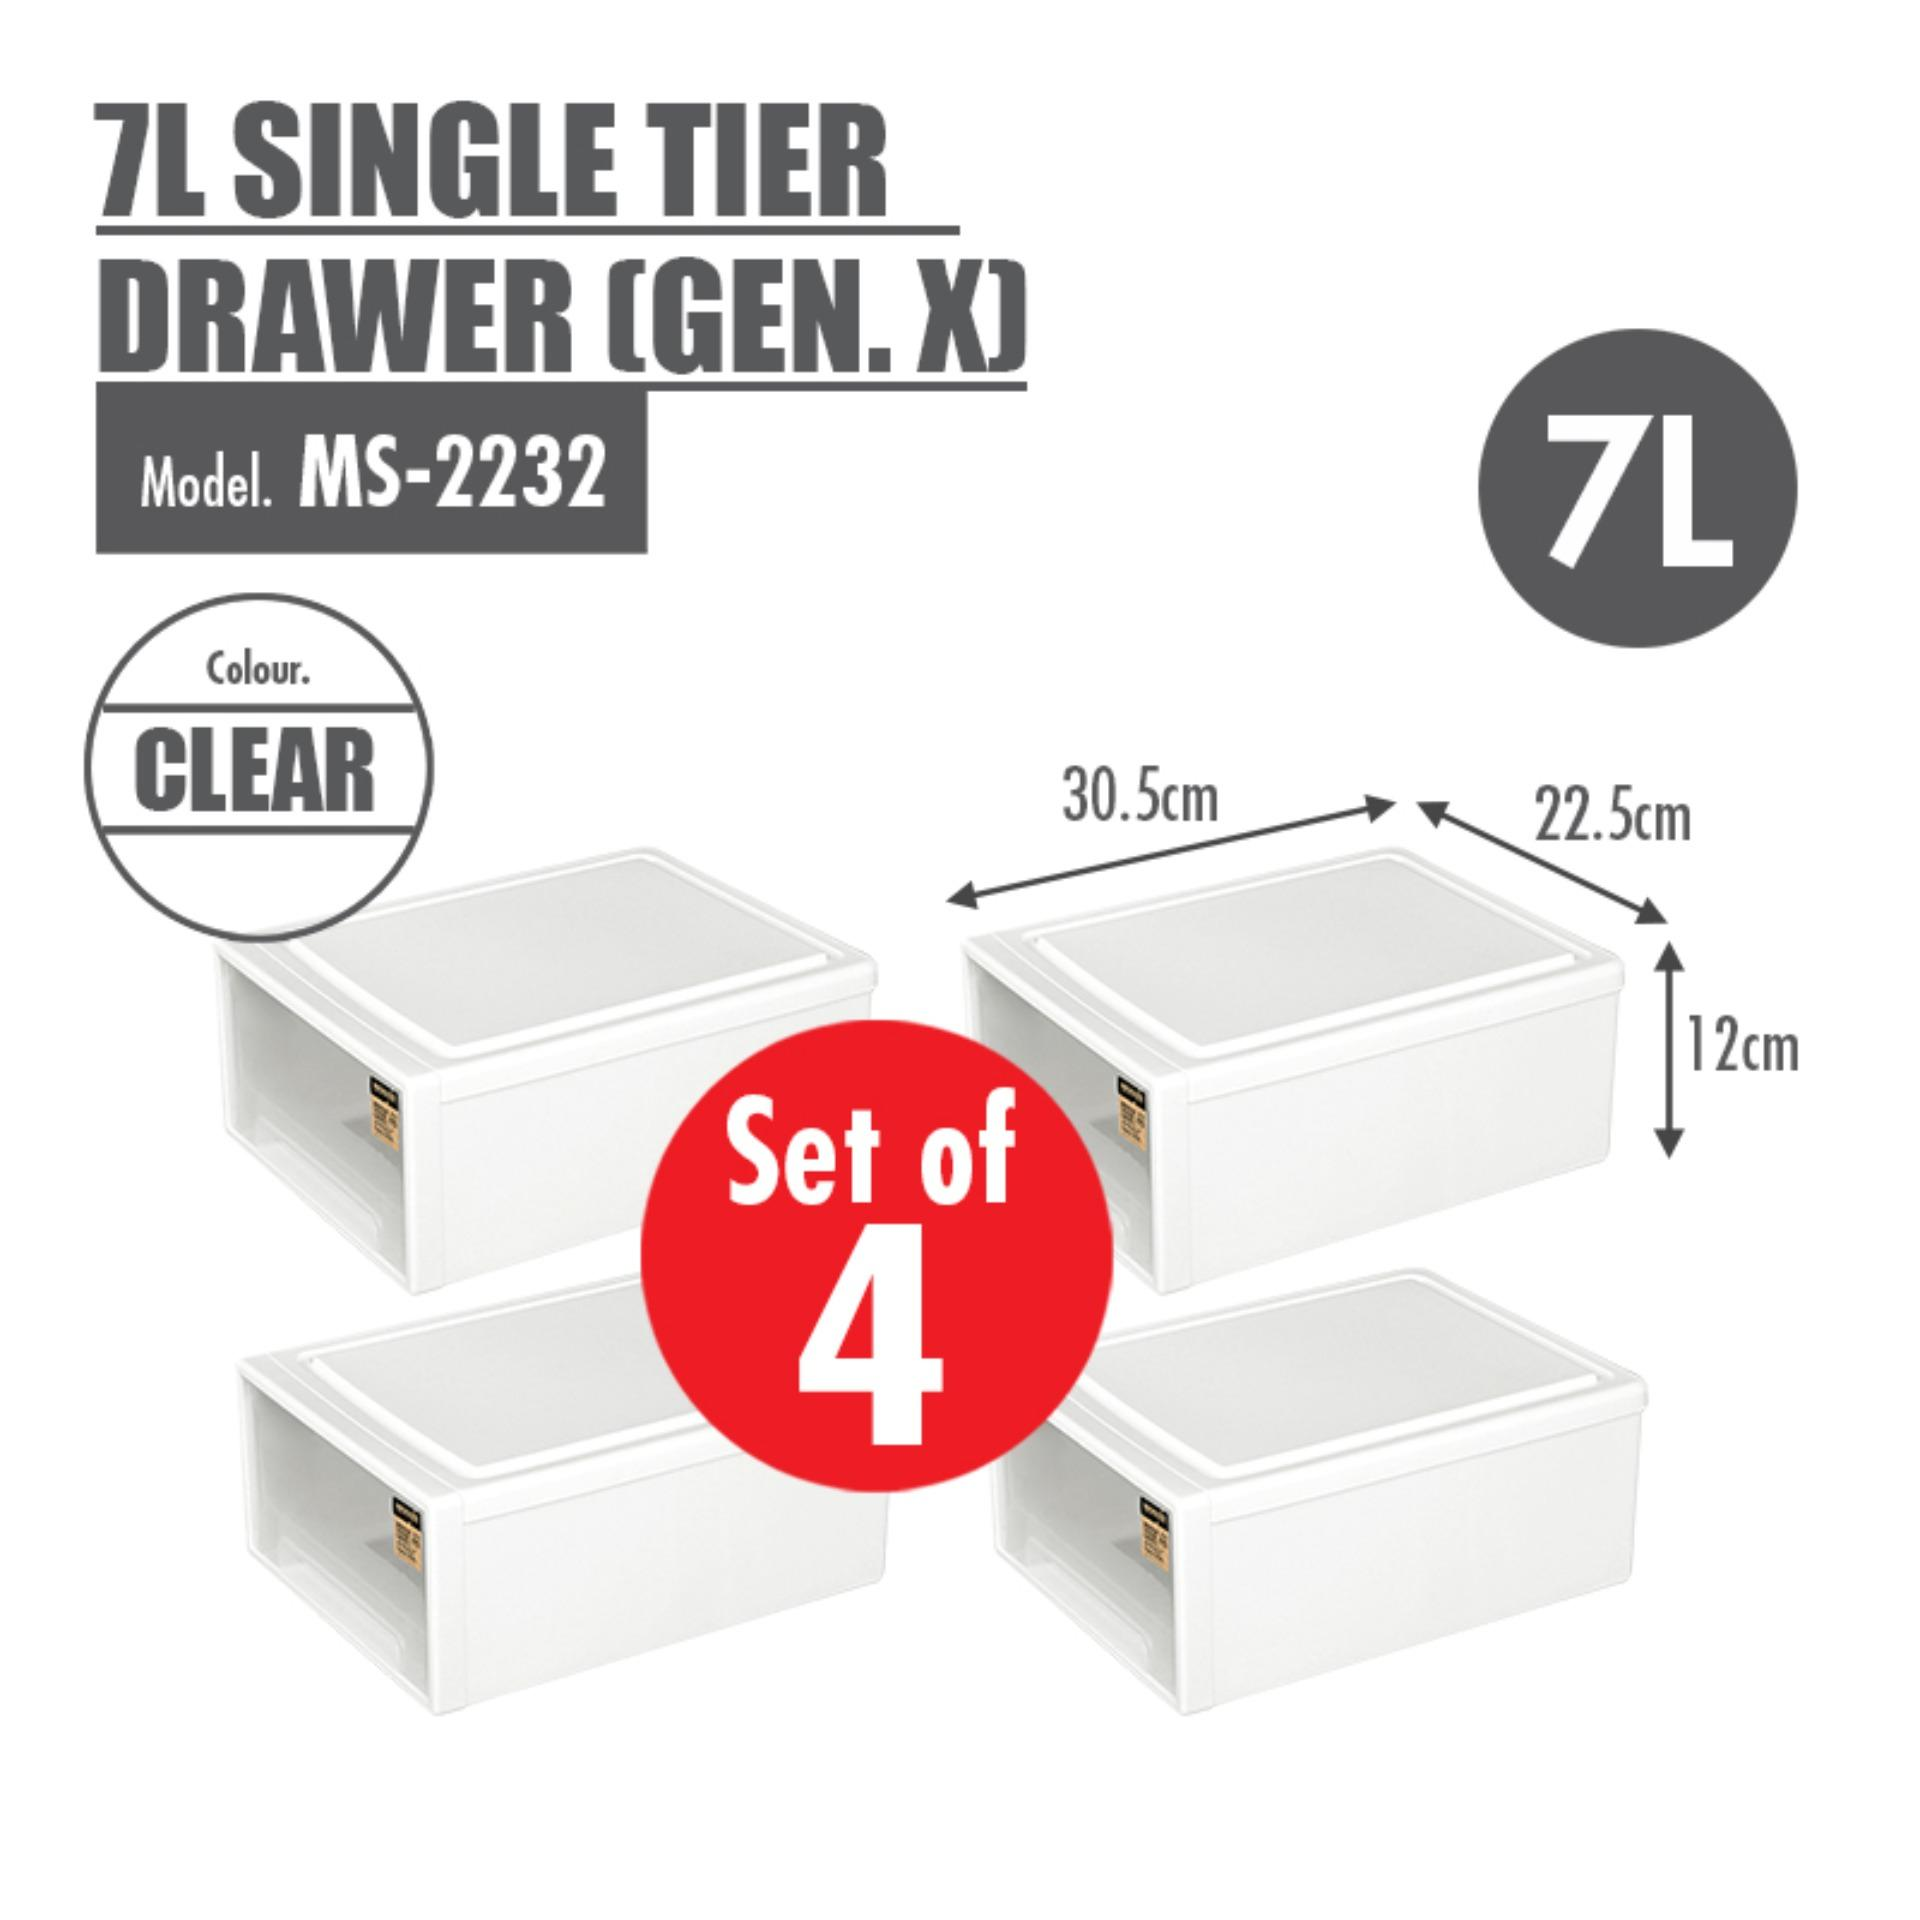 [Set of 4] HOUZE - 7L Single Tier Drawer (Gen. X) (Dim: 30.5x22.5x12cm)